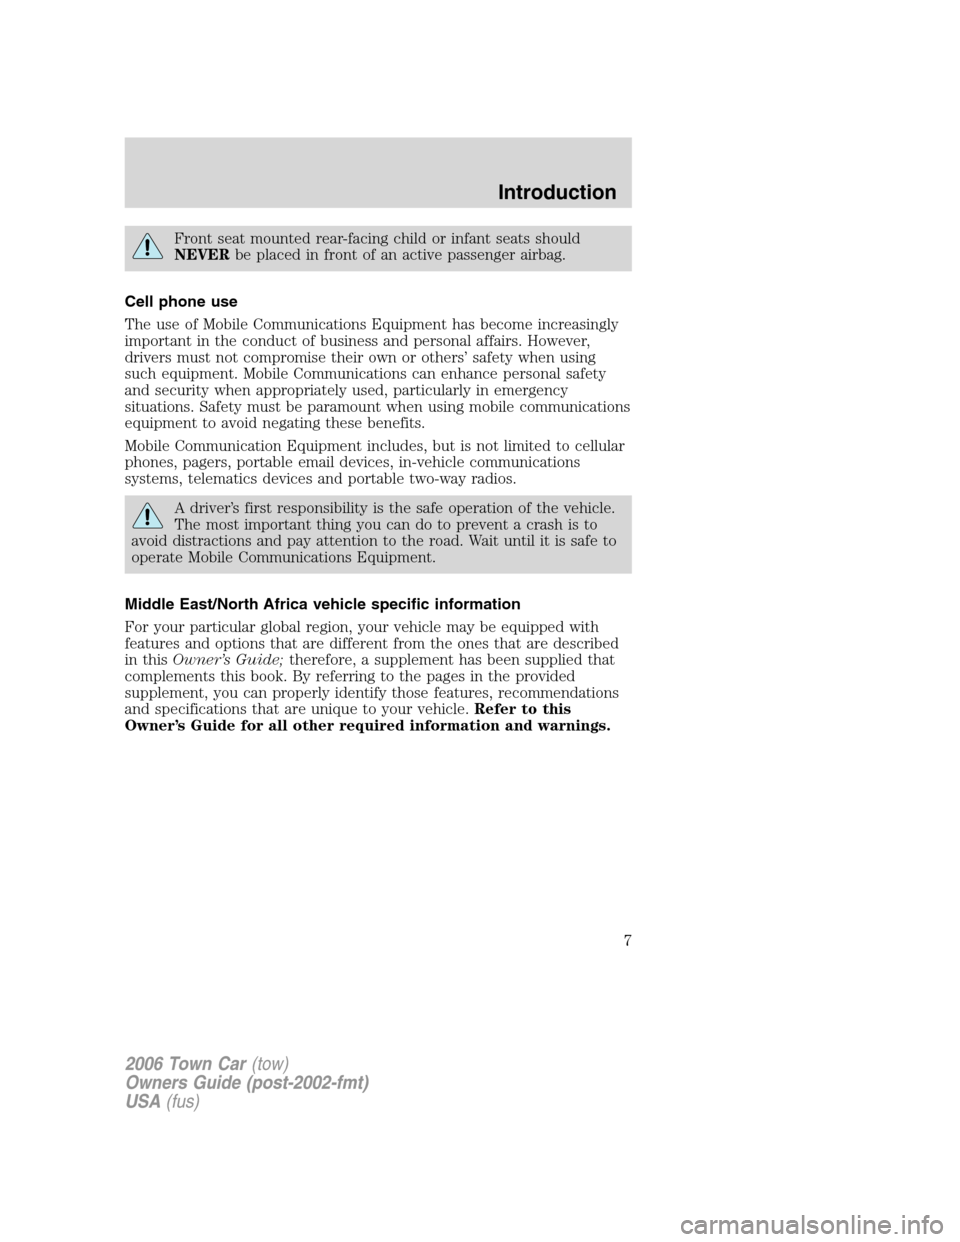 LINCOLN TOWN CAR 2006  Owners Manual, Page 7